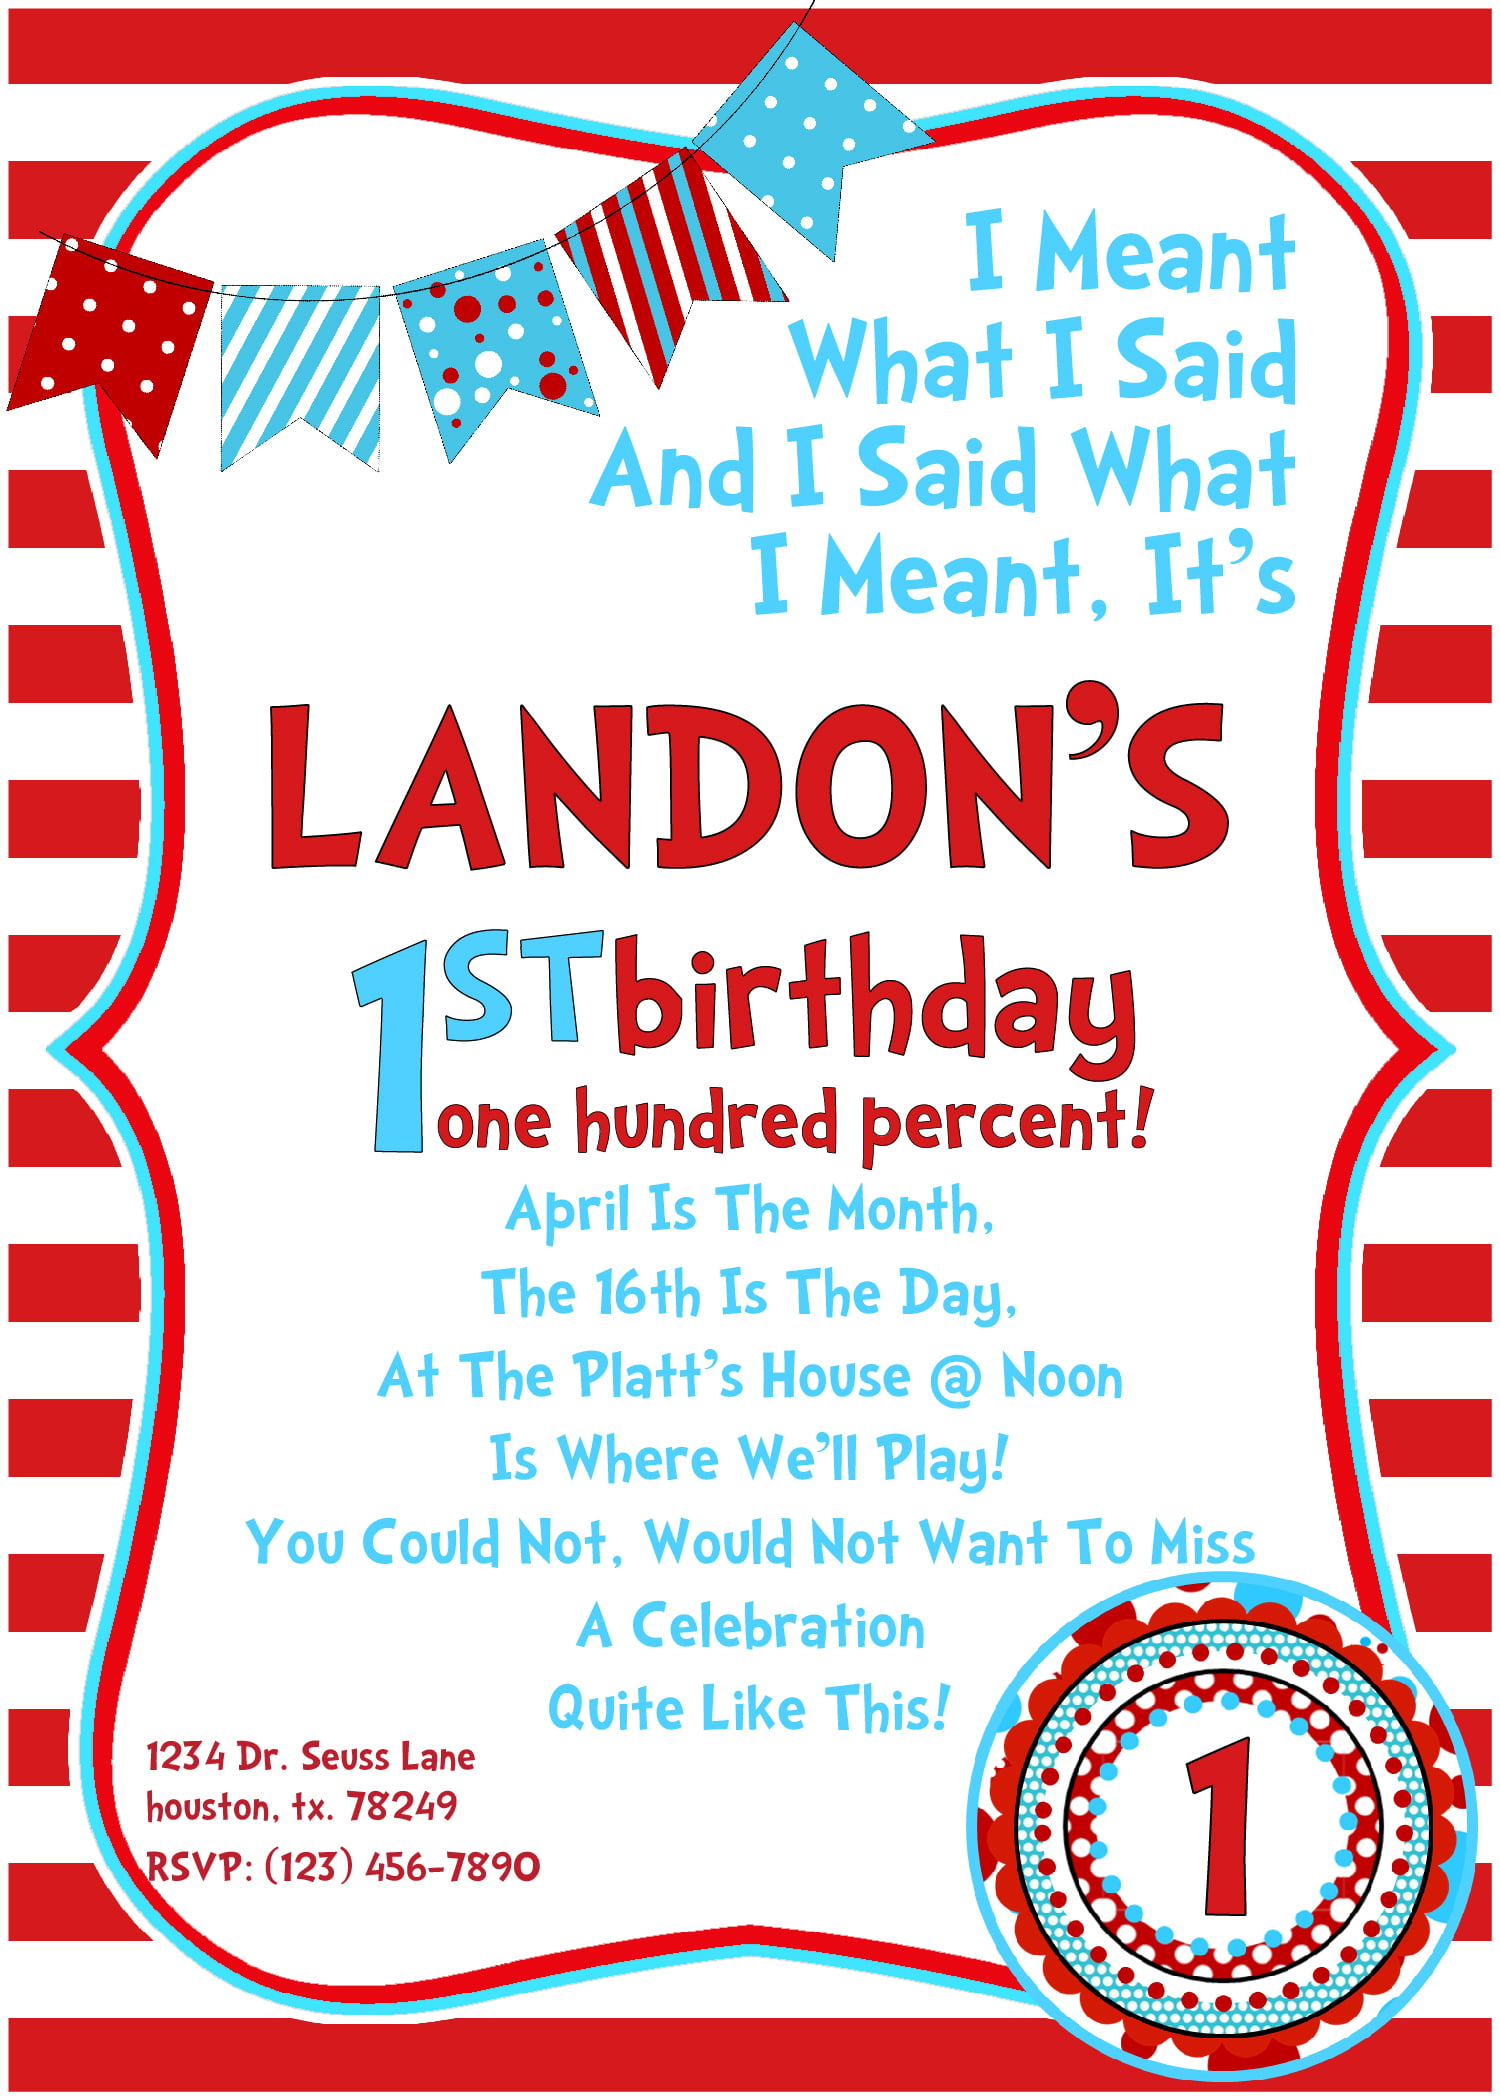 Dr Seuss Birthday Invitations Wording | Drevio Invitations Design